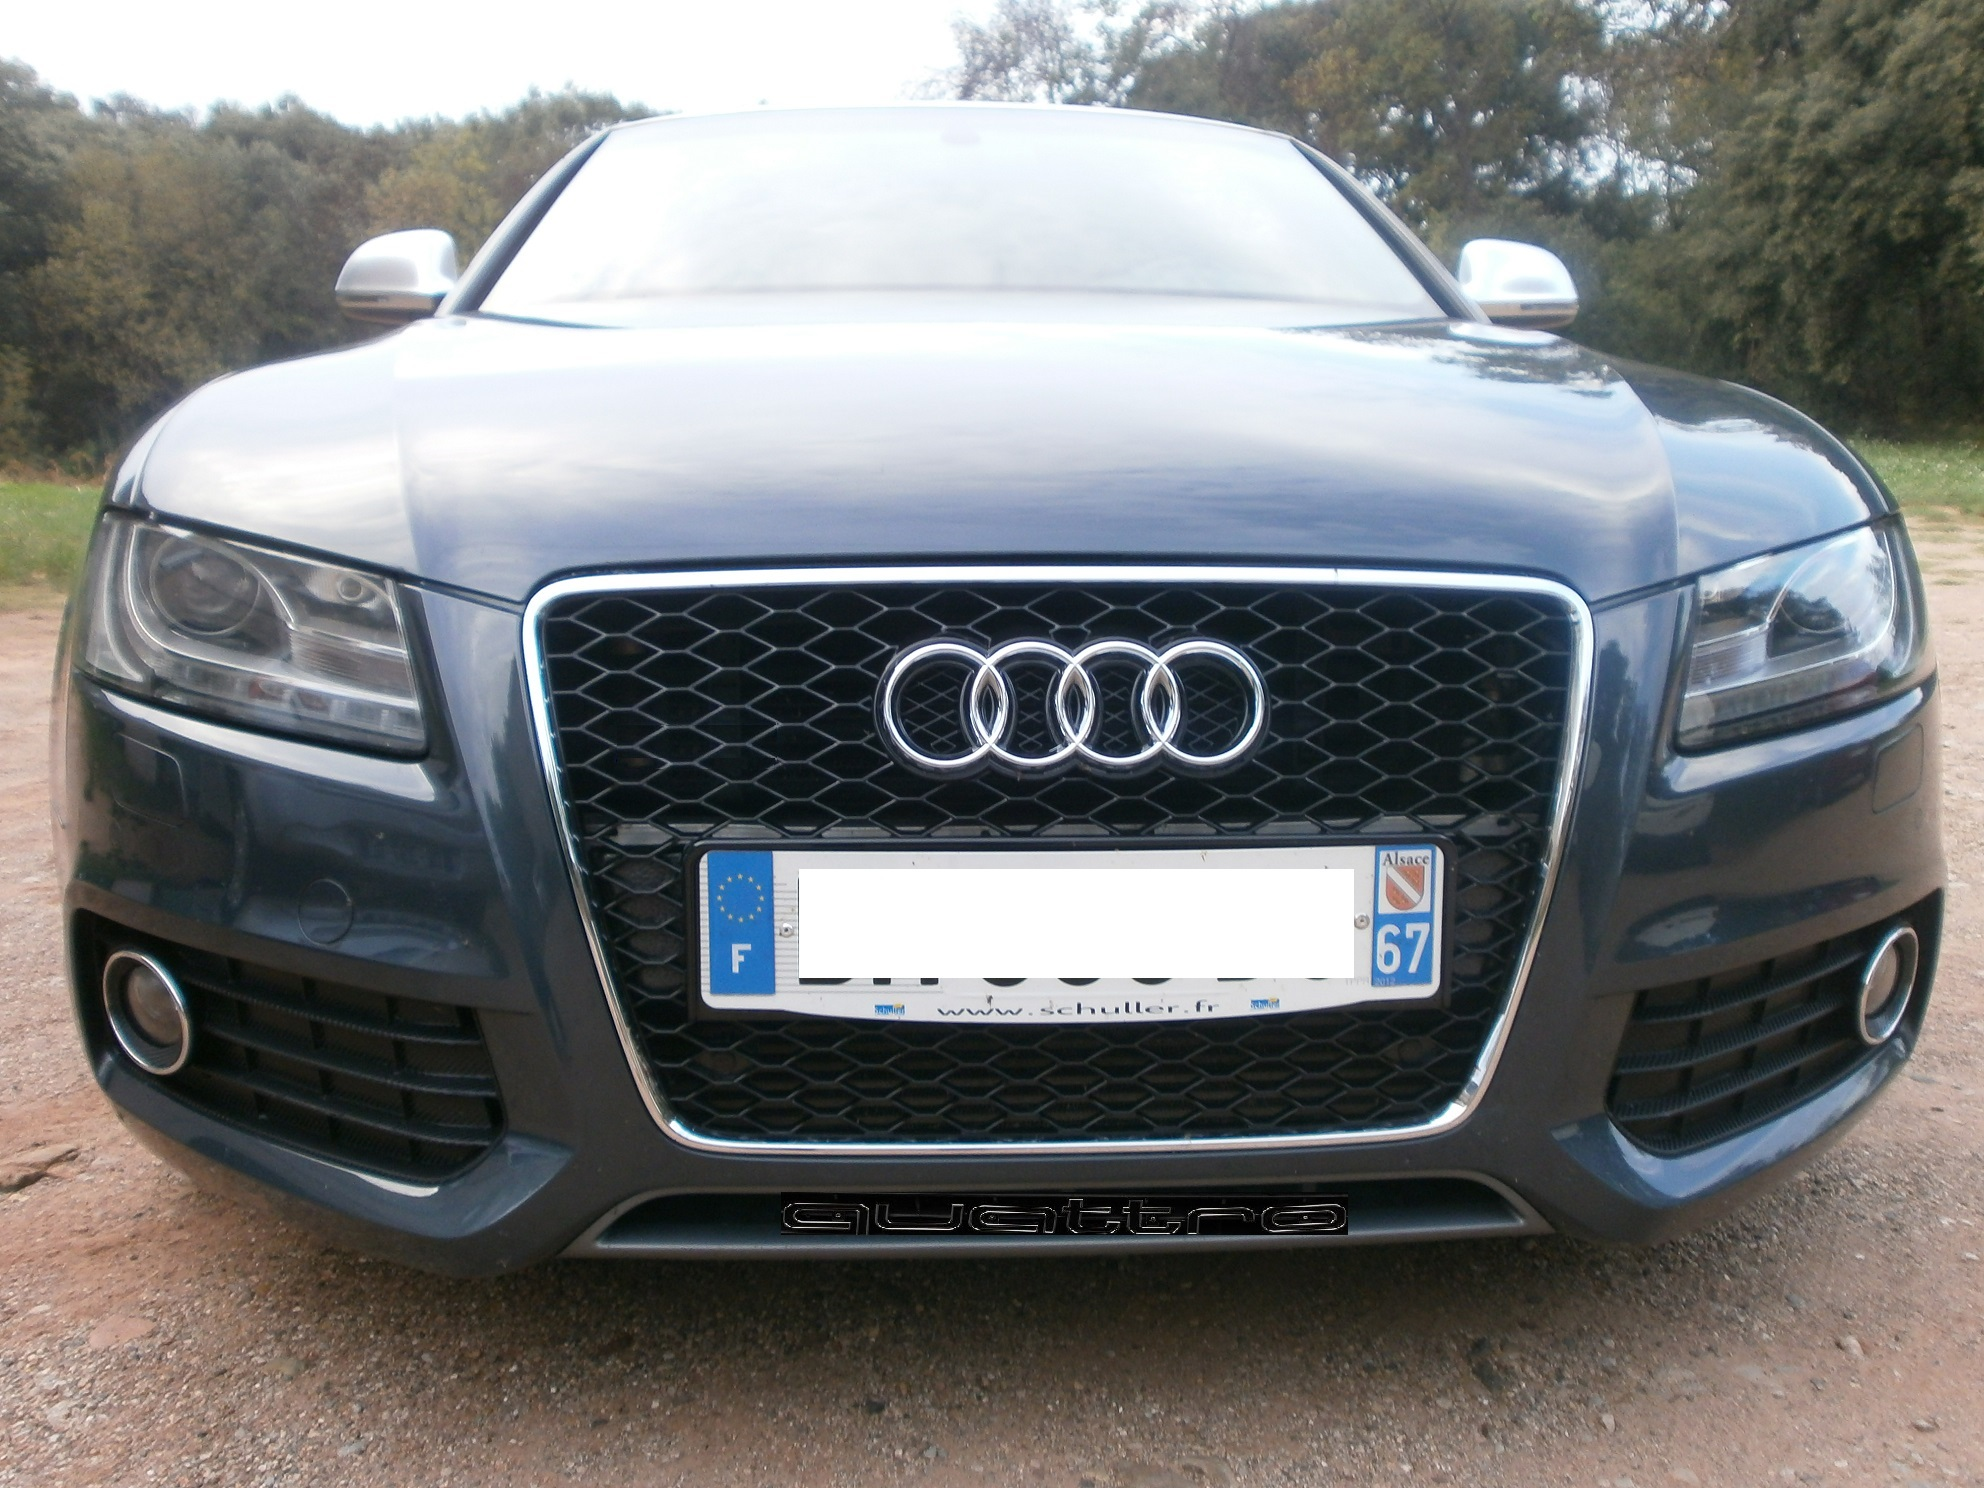 mon a5 3 0 tdi sline a5 audi forum marques. Black Bedroom Furniture Sets. Home Design Ideas